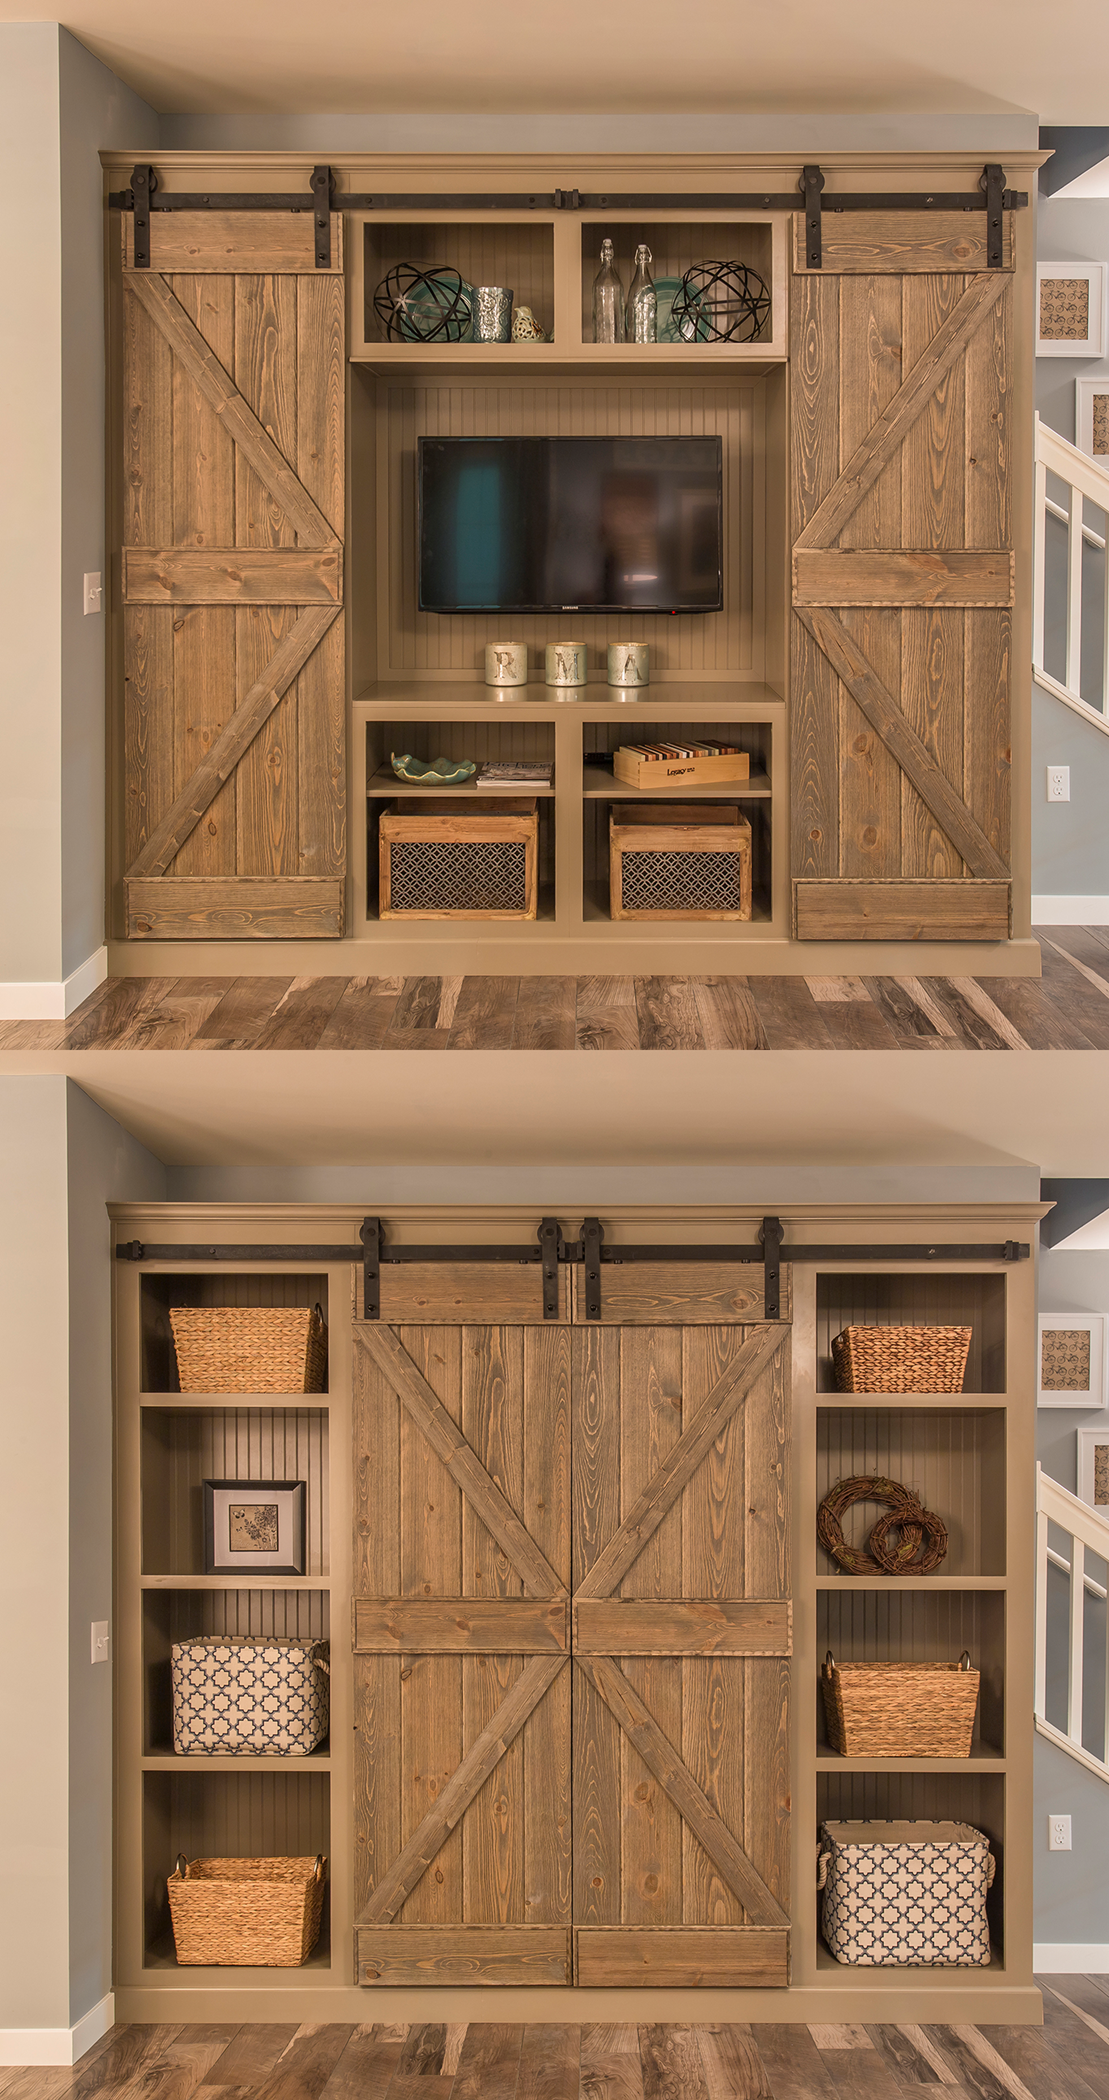 hill in m sliding door white expand click magnussen pine bookcase p home the bookcases to rustic